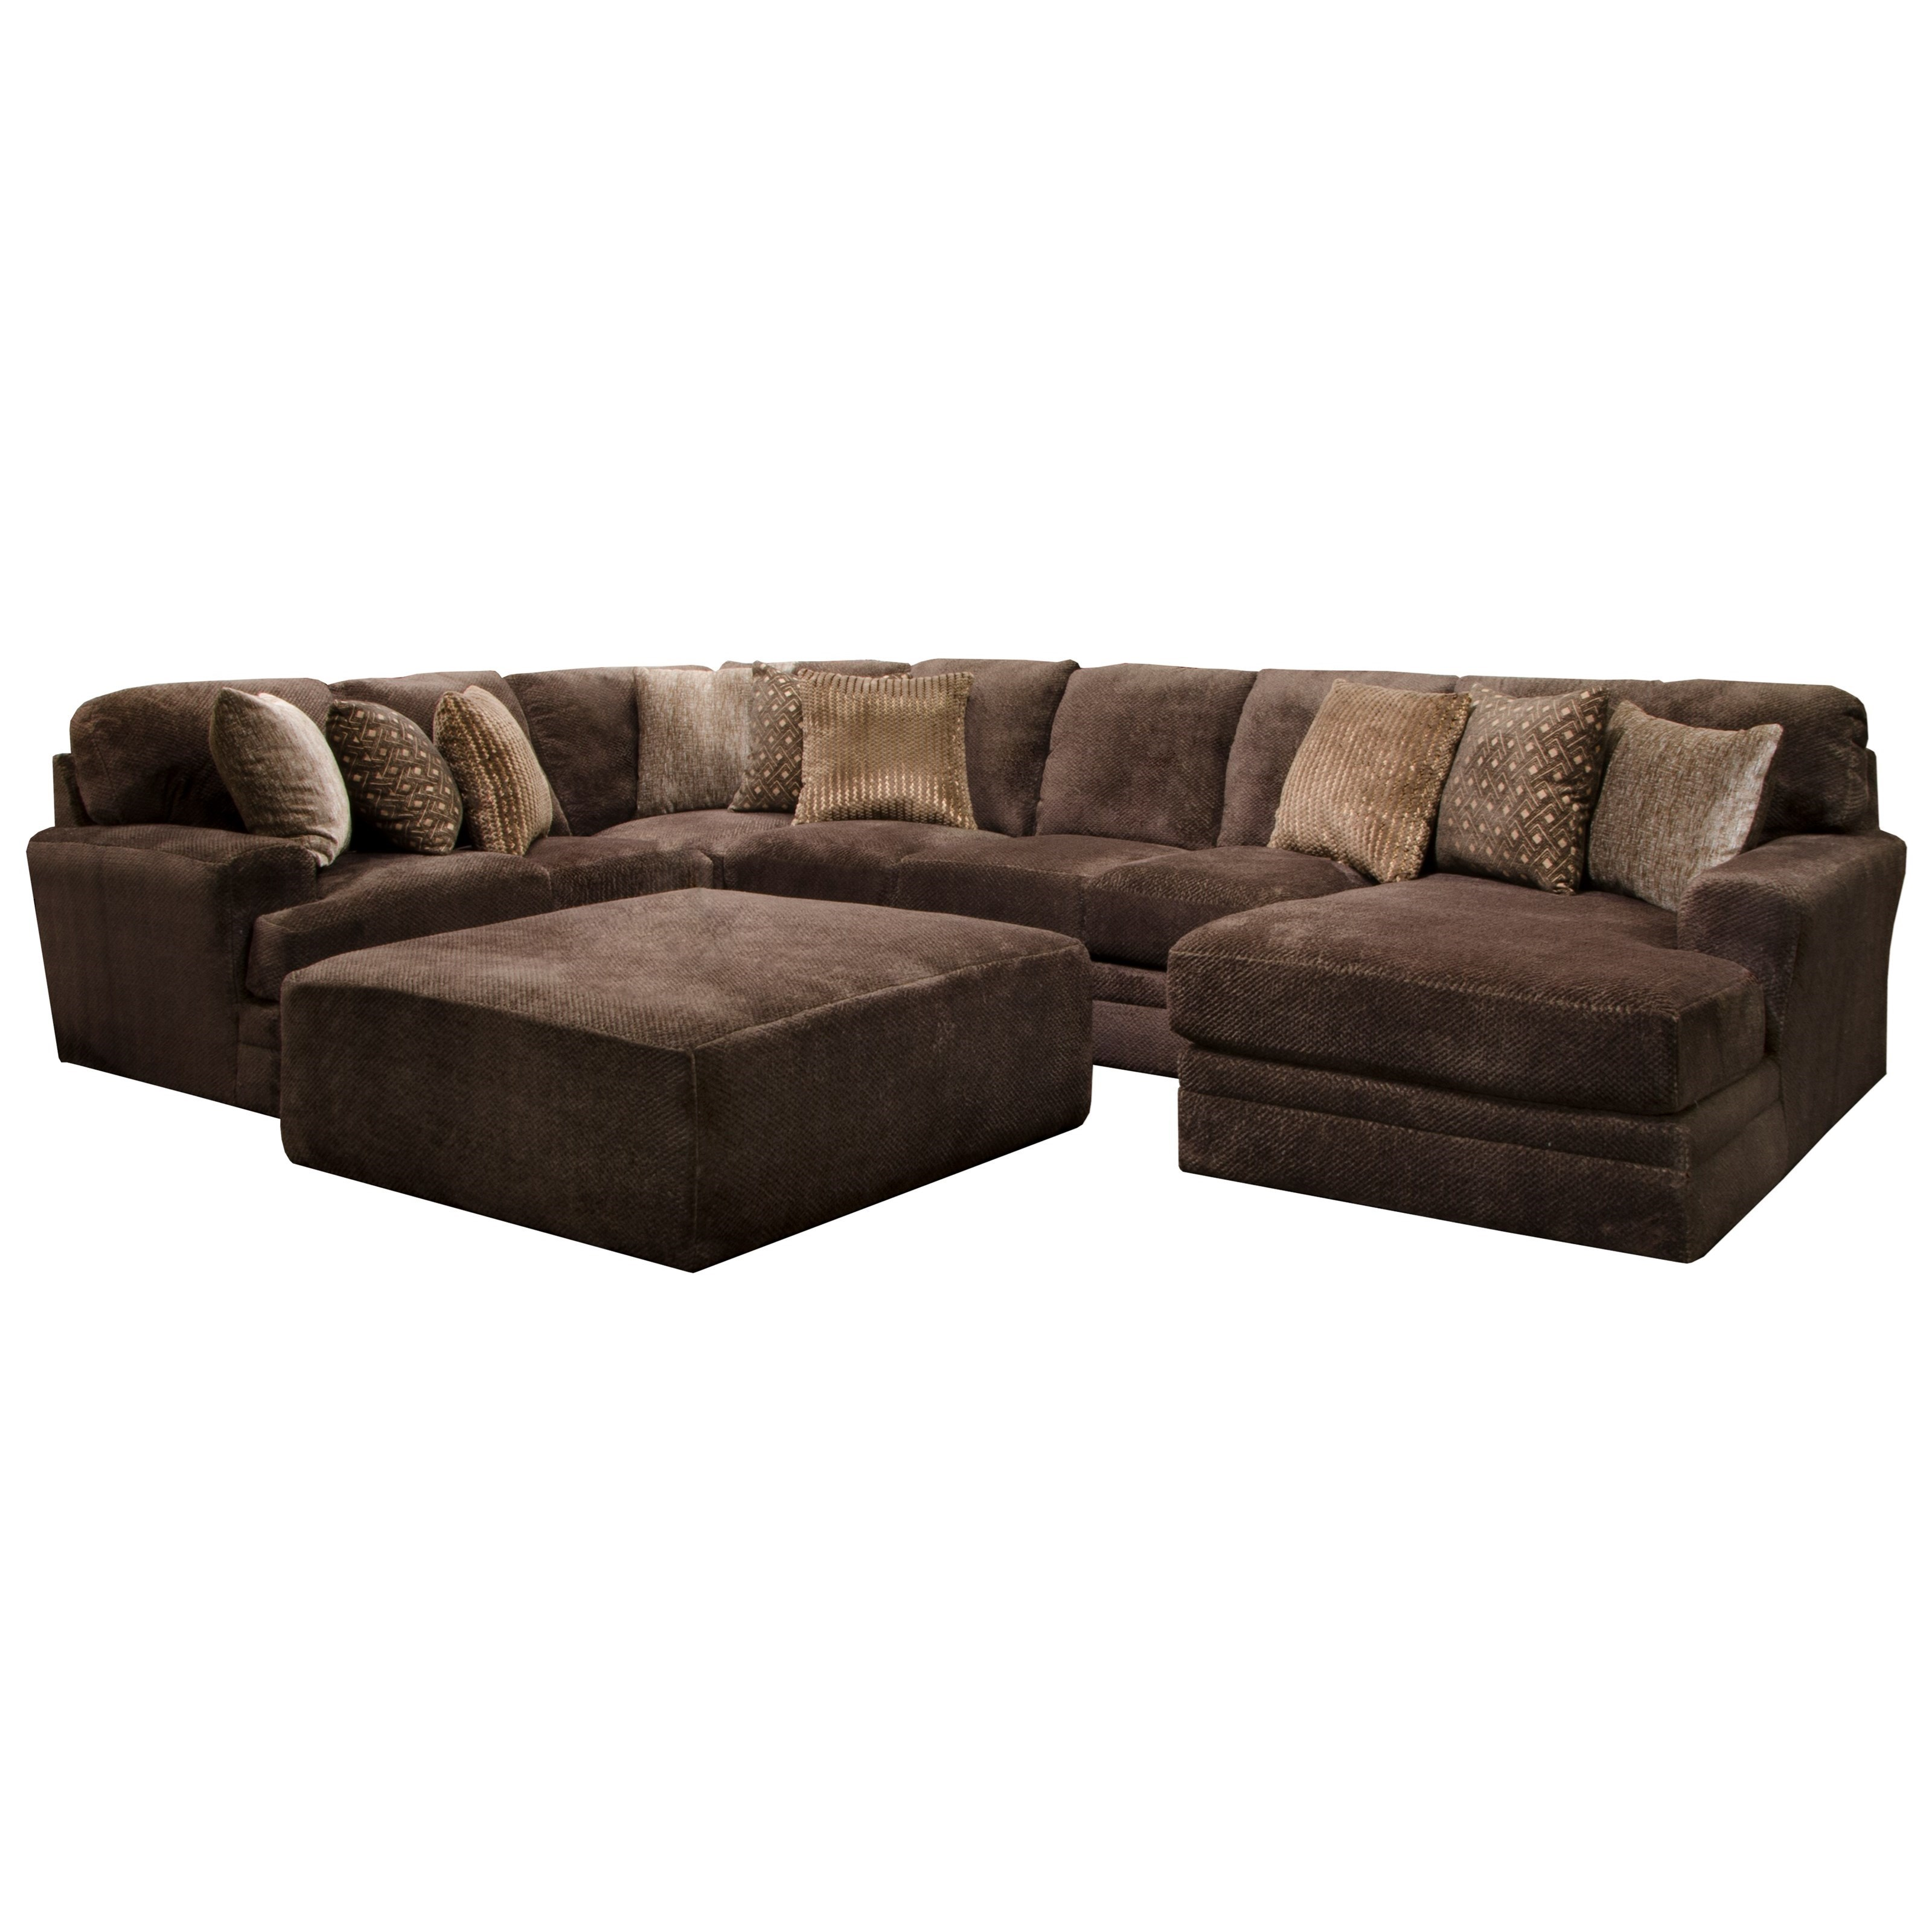 jackson furniture sectional sofas leather sofa bed houston tx mammoth four piece with chaise